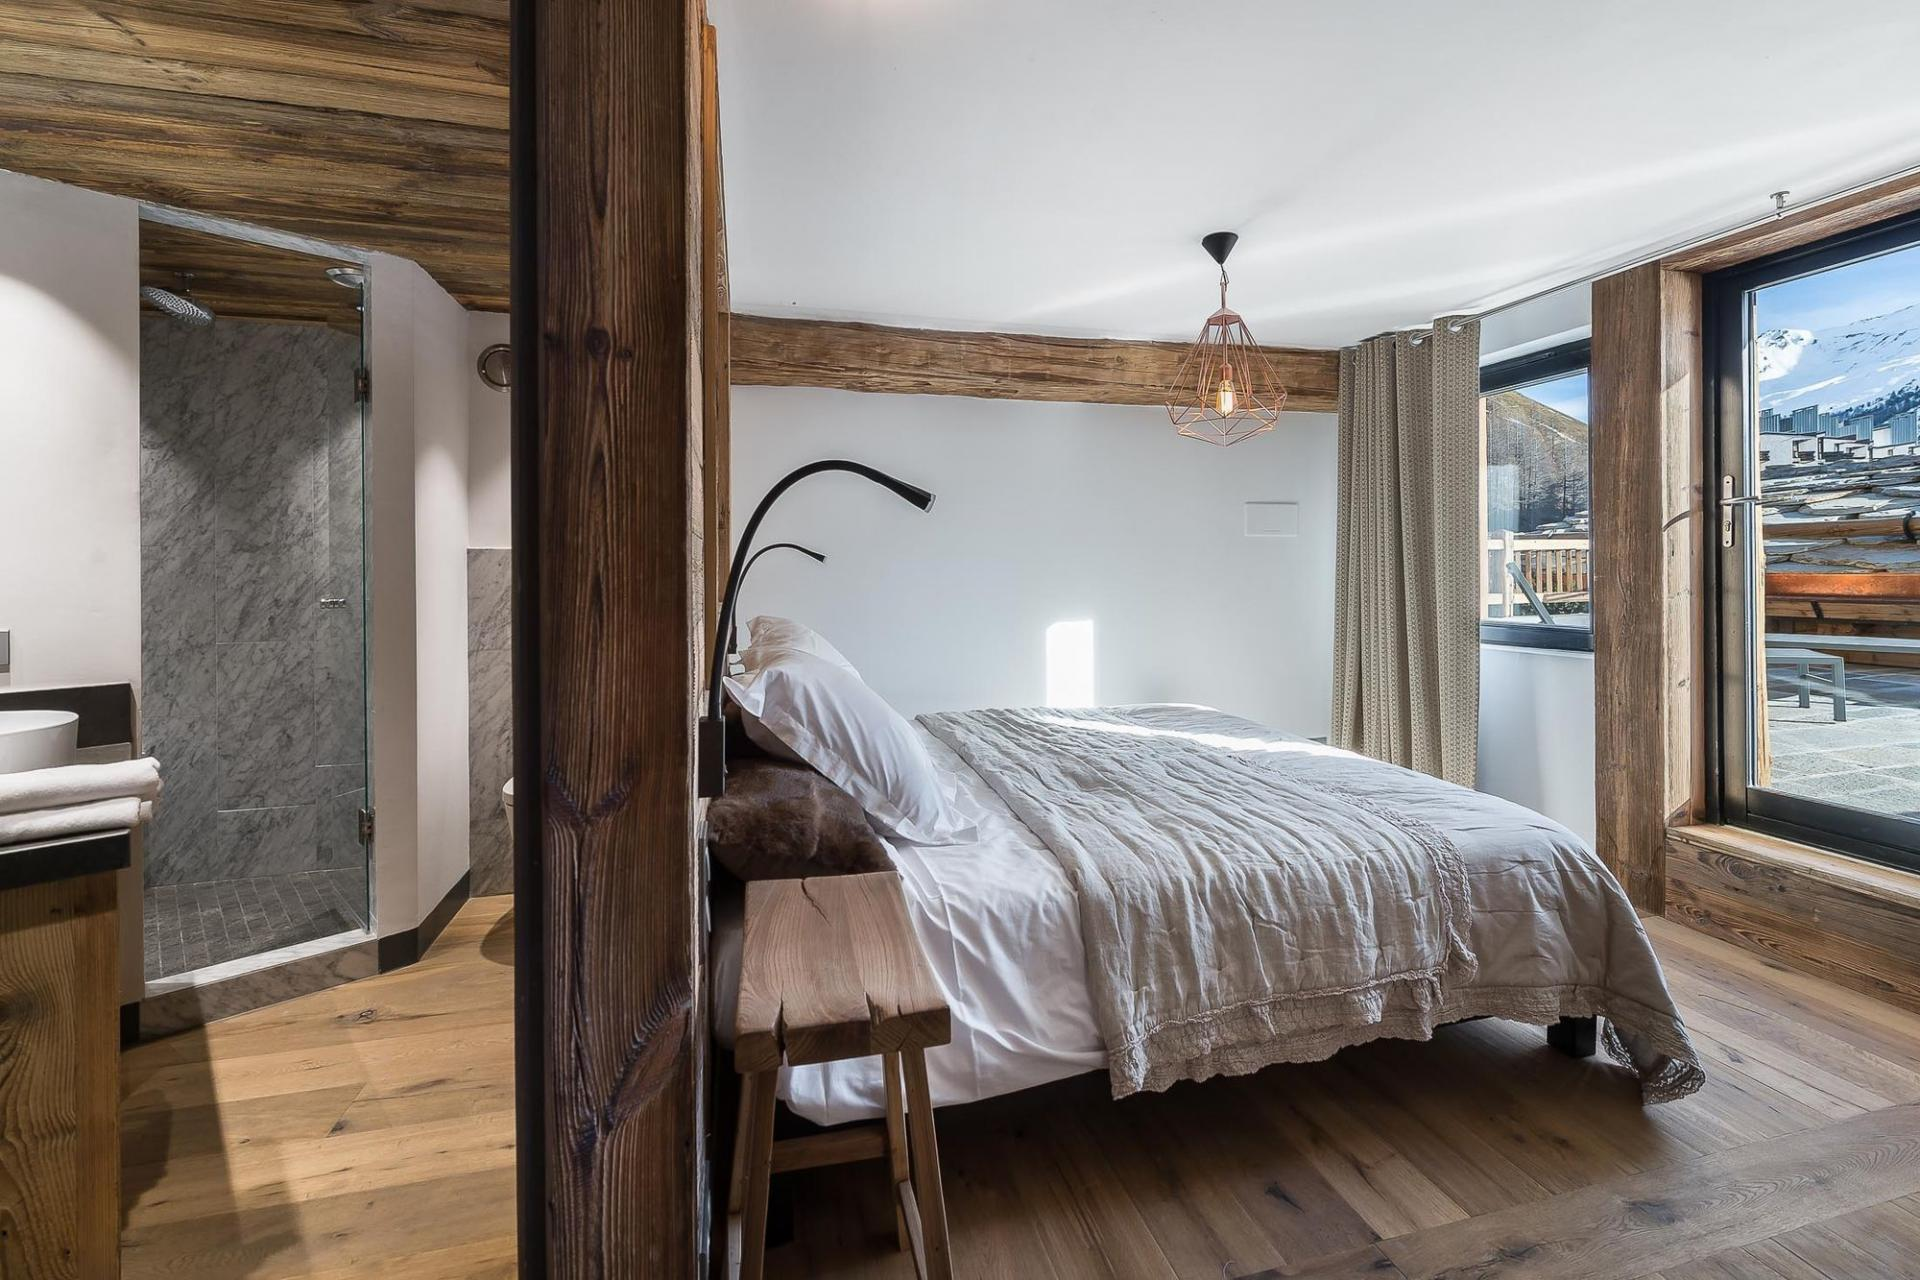 ANOTHER BEDROOM WITH BEAUTIFUL VIEWS ON THE MOUNTAINS